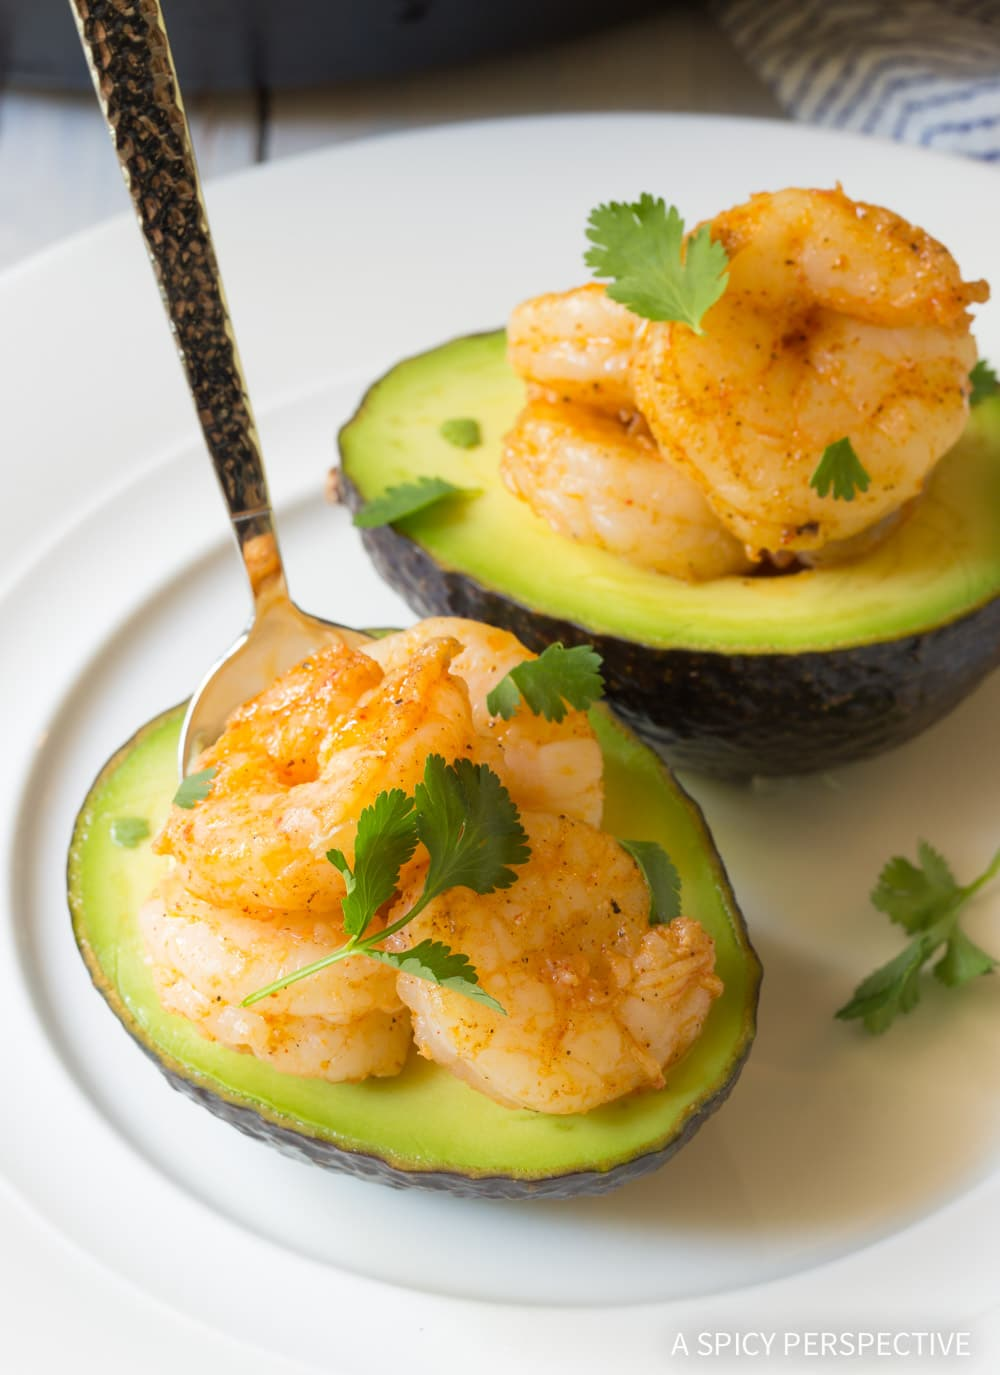 Healthy Keto Creole Shrimp Stuffed Avocado Recipe #ASpicyPerspective #ketogenic